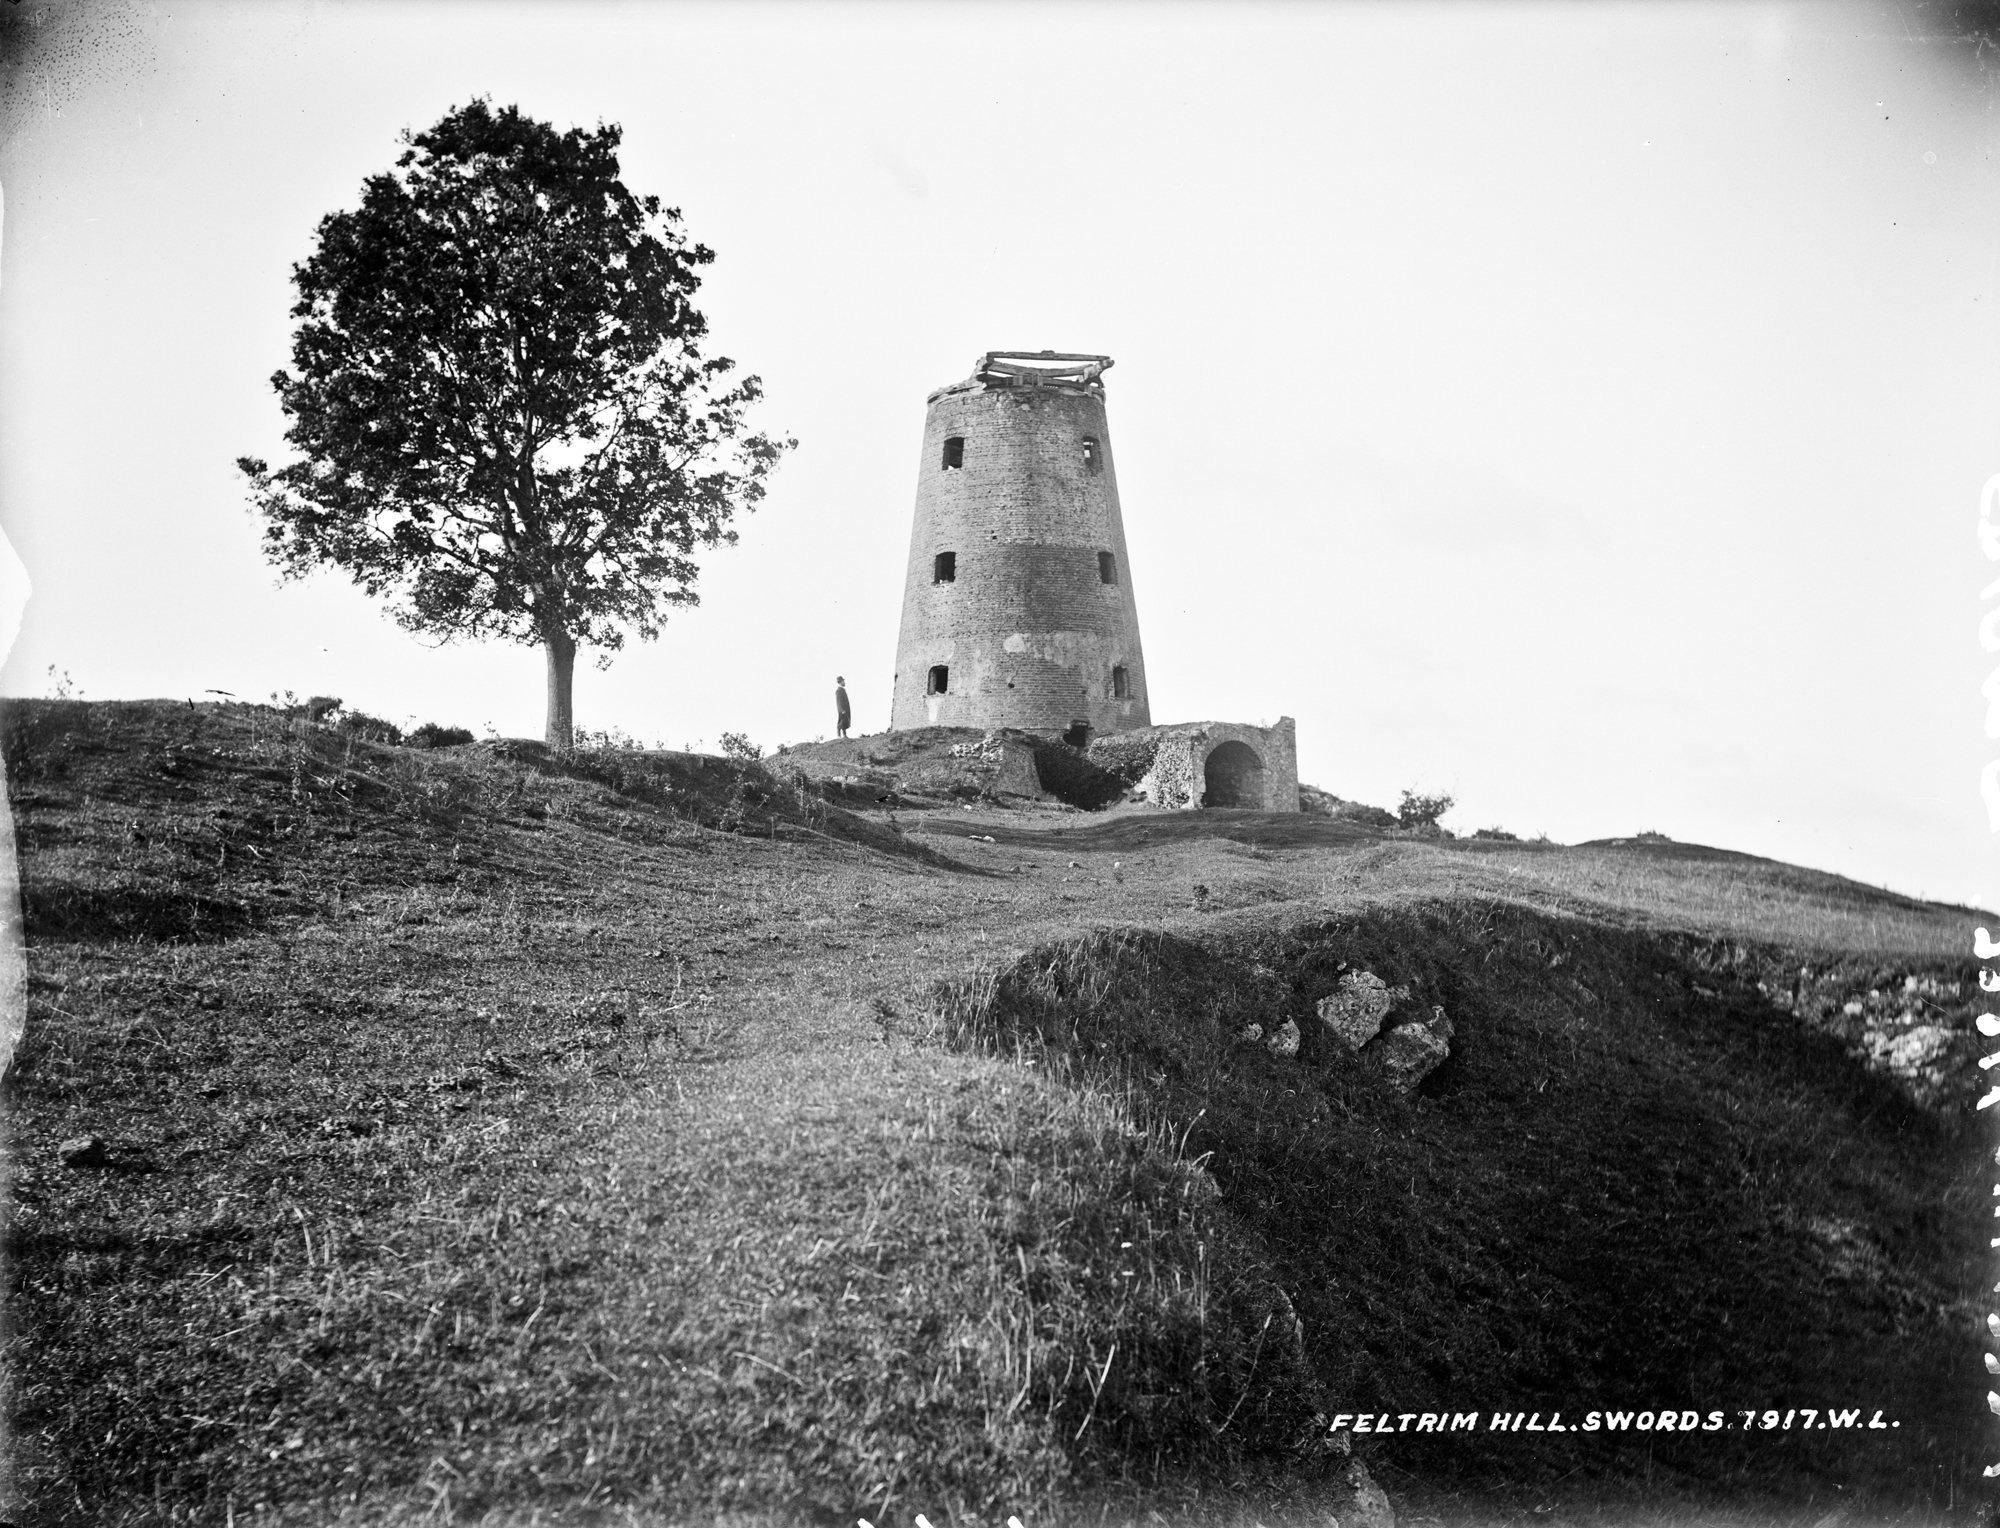 Feltrim Hill, Swords, Co. Dublin